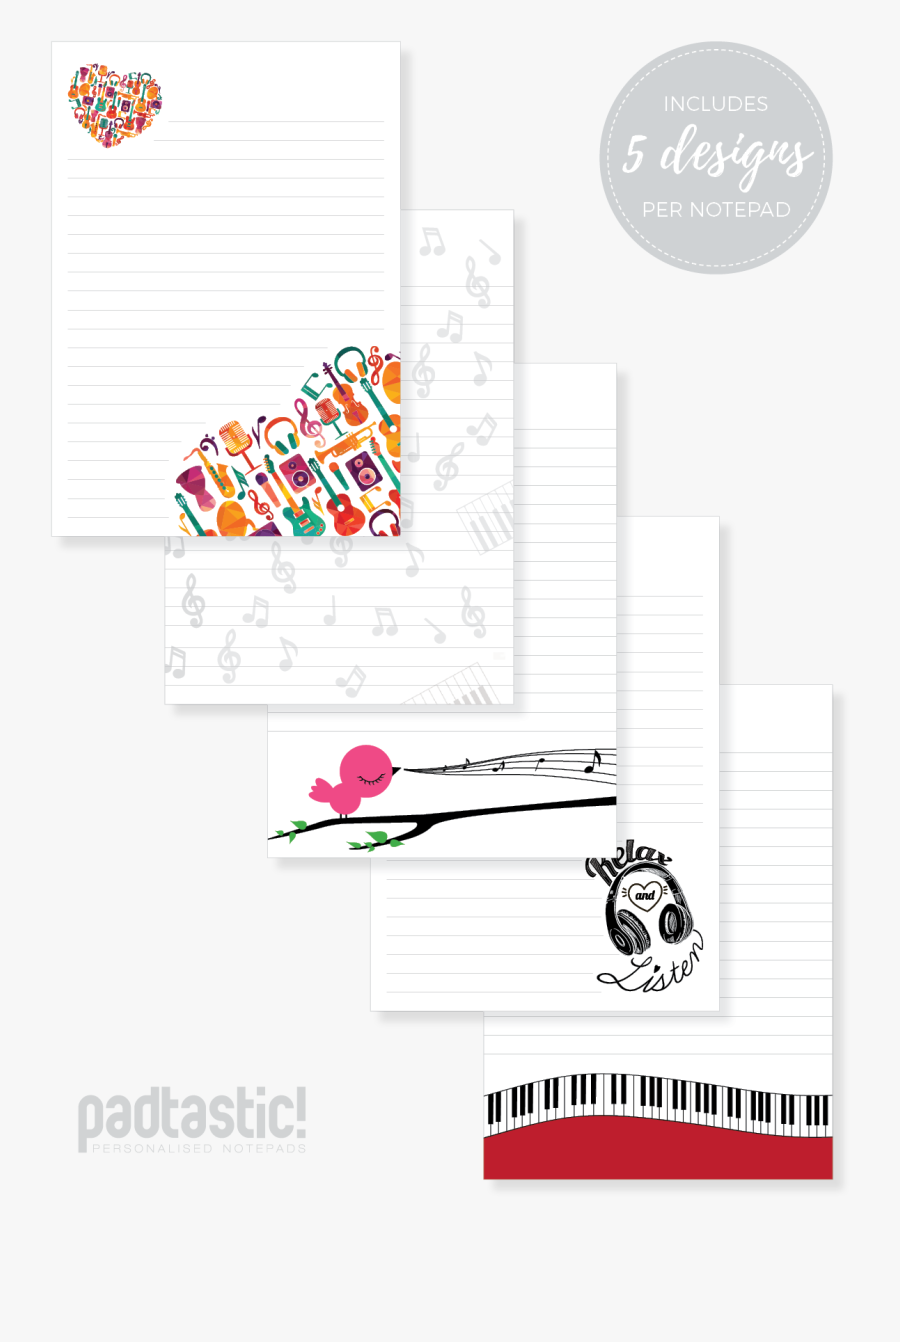 Notepad Clipart Notepad Line - Notepad Designs, Transparent Clipart